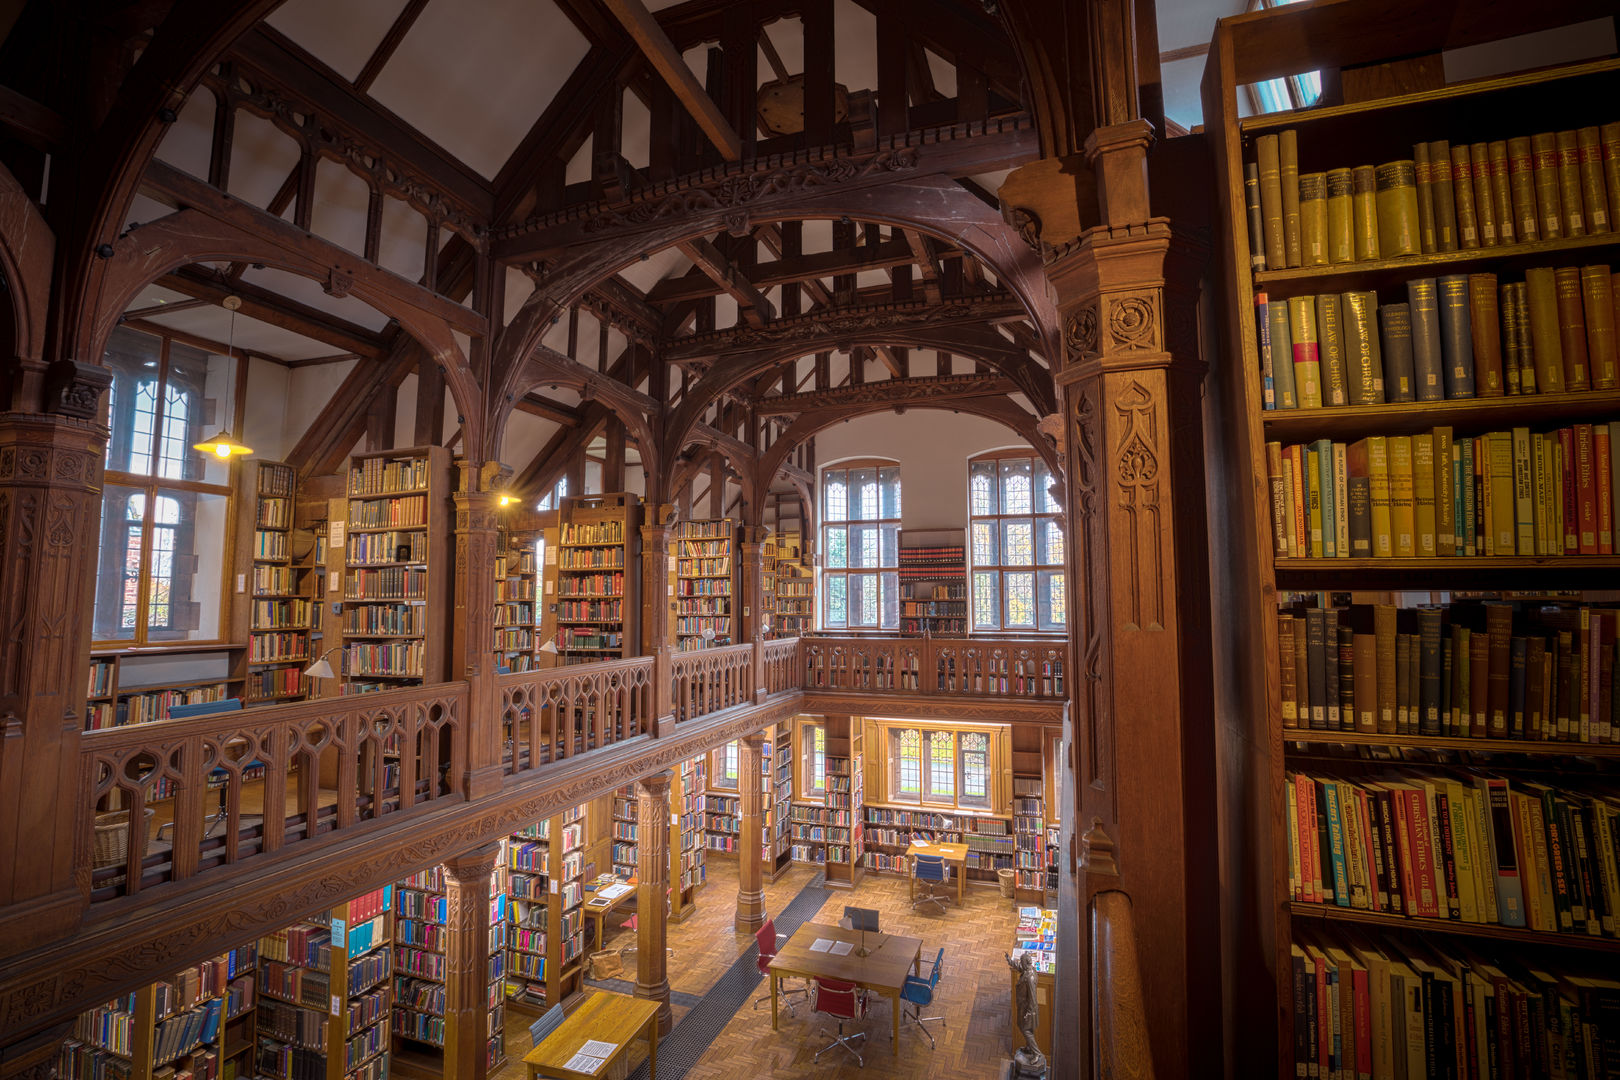 Picture of the inside of a Library in Wales